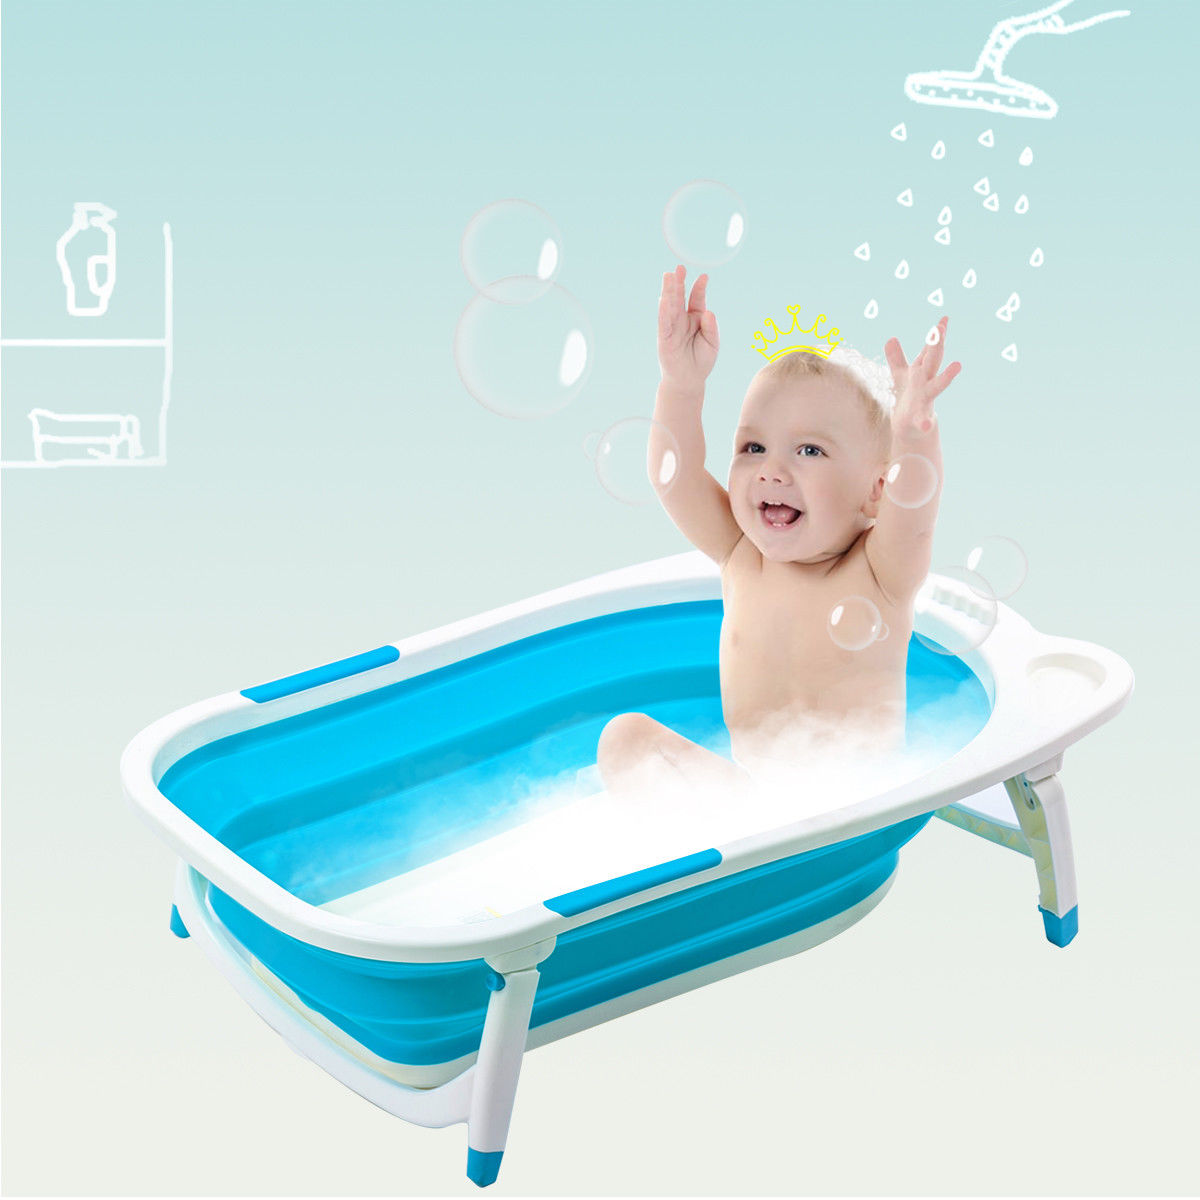 Gymax Blue Baby Folding Bathtub Infant Collapsible Portable Shower Basin w  Block by Gymax